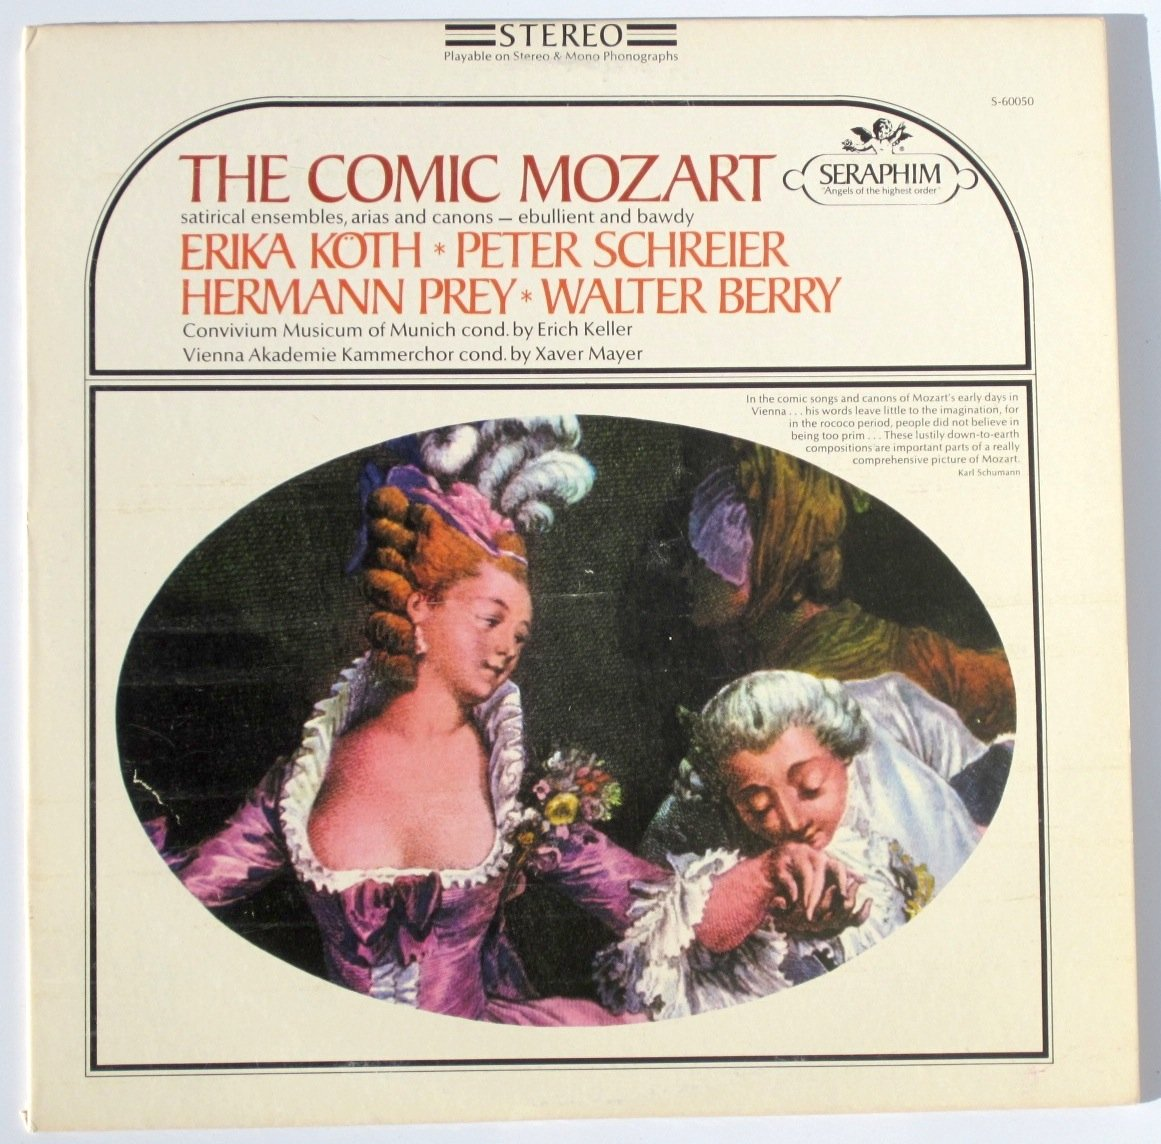 Mozart: The Comic Mozart, Satirical Ensembles, Arias And Canons by Seraphim